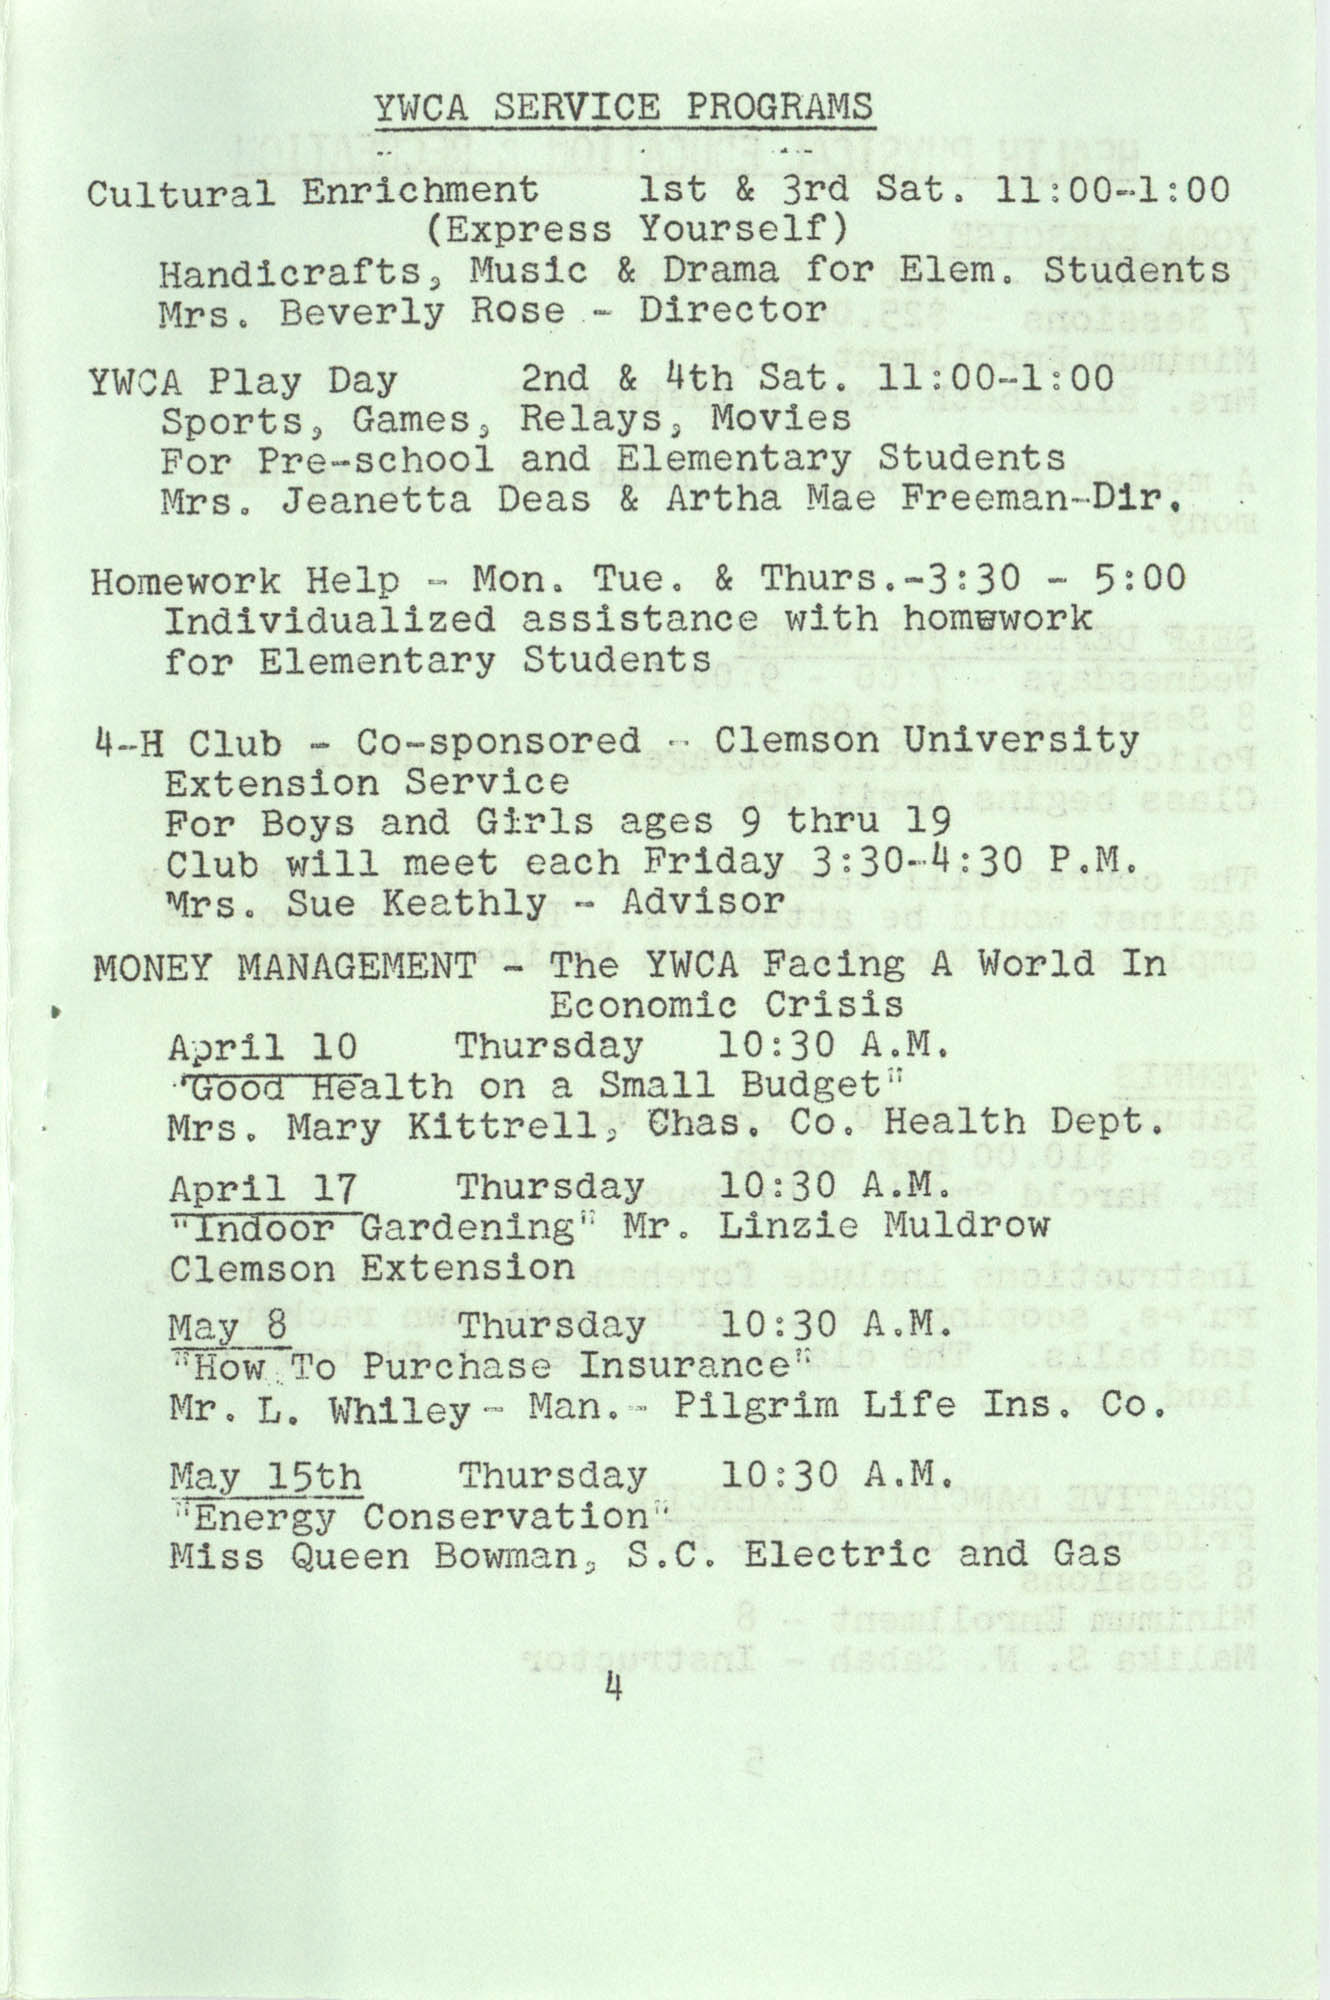 Spring 1975 Schedule, Y.W.C.A. of Greater Charleston, Page 4